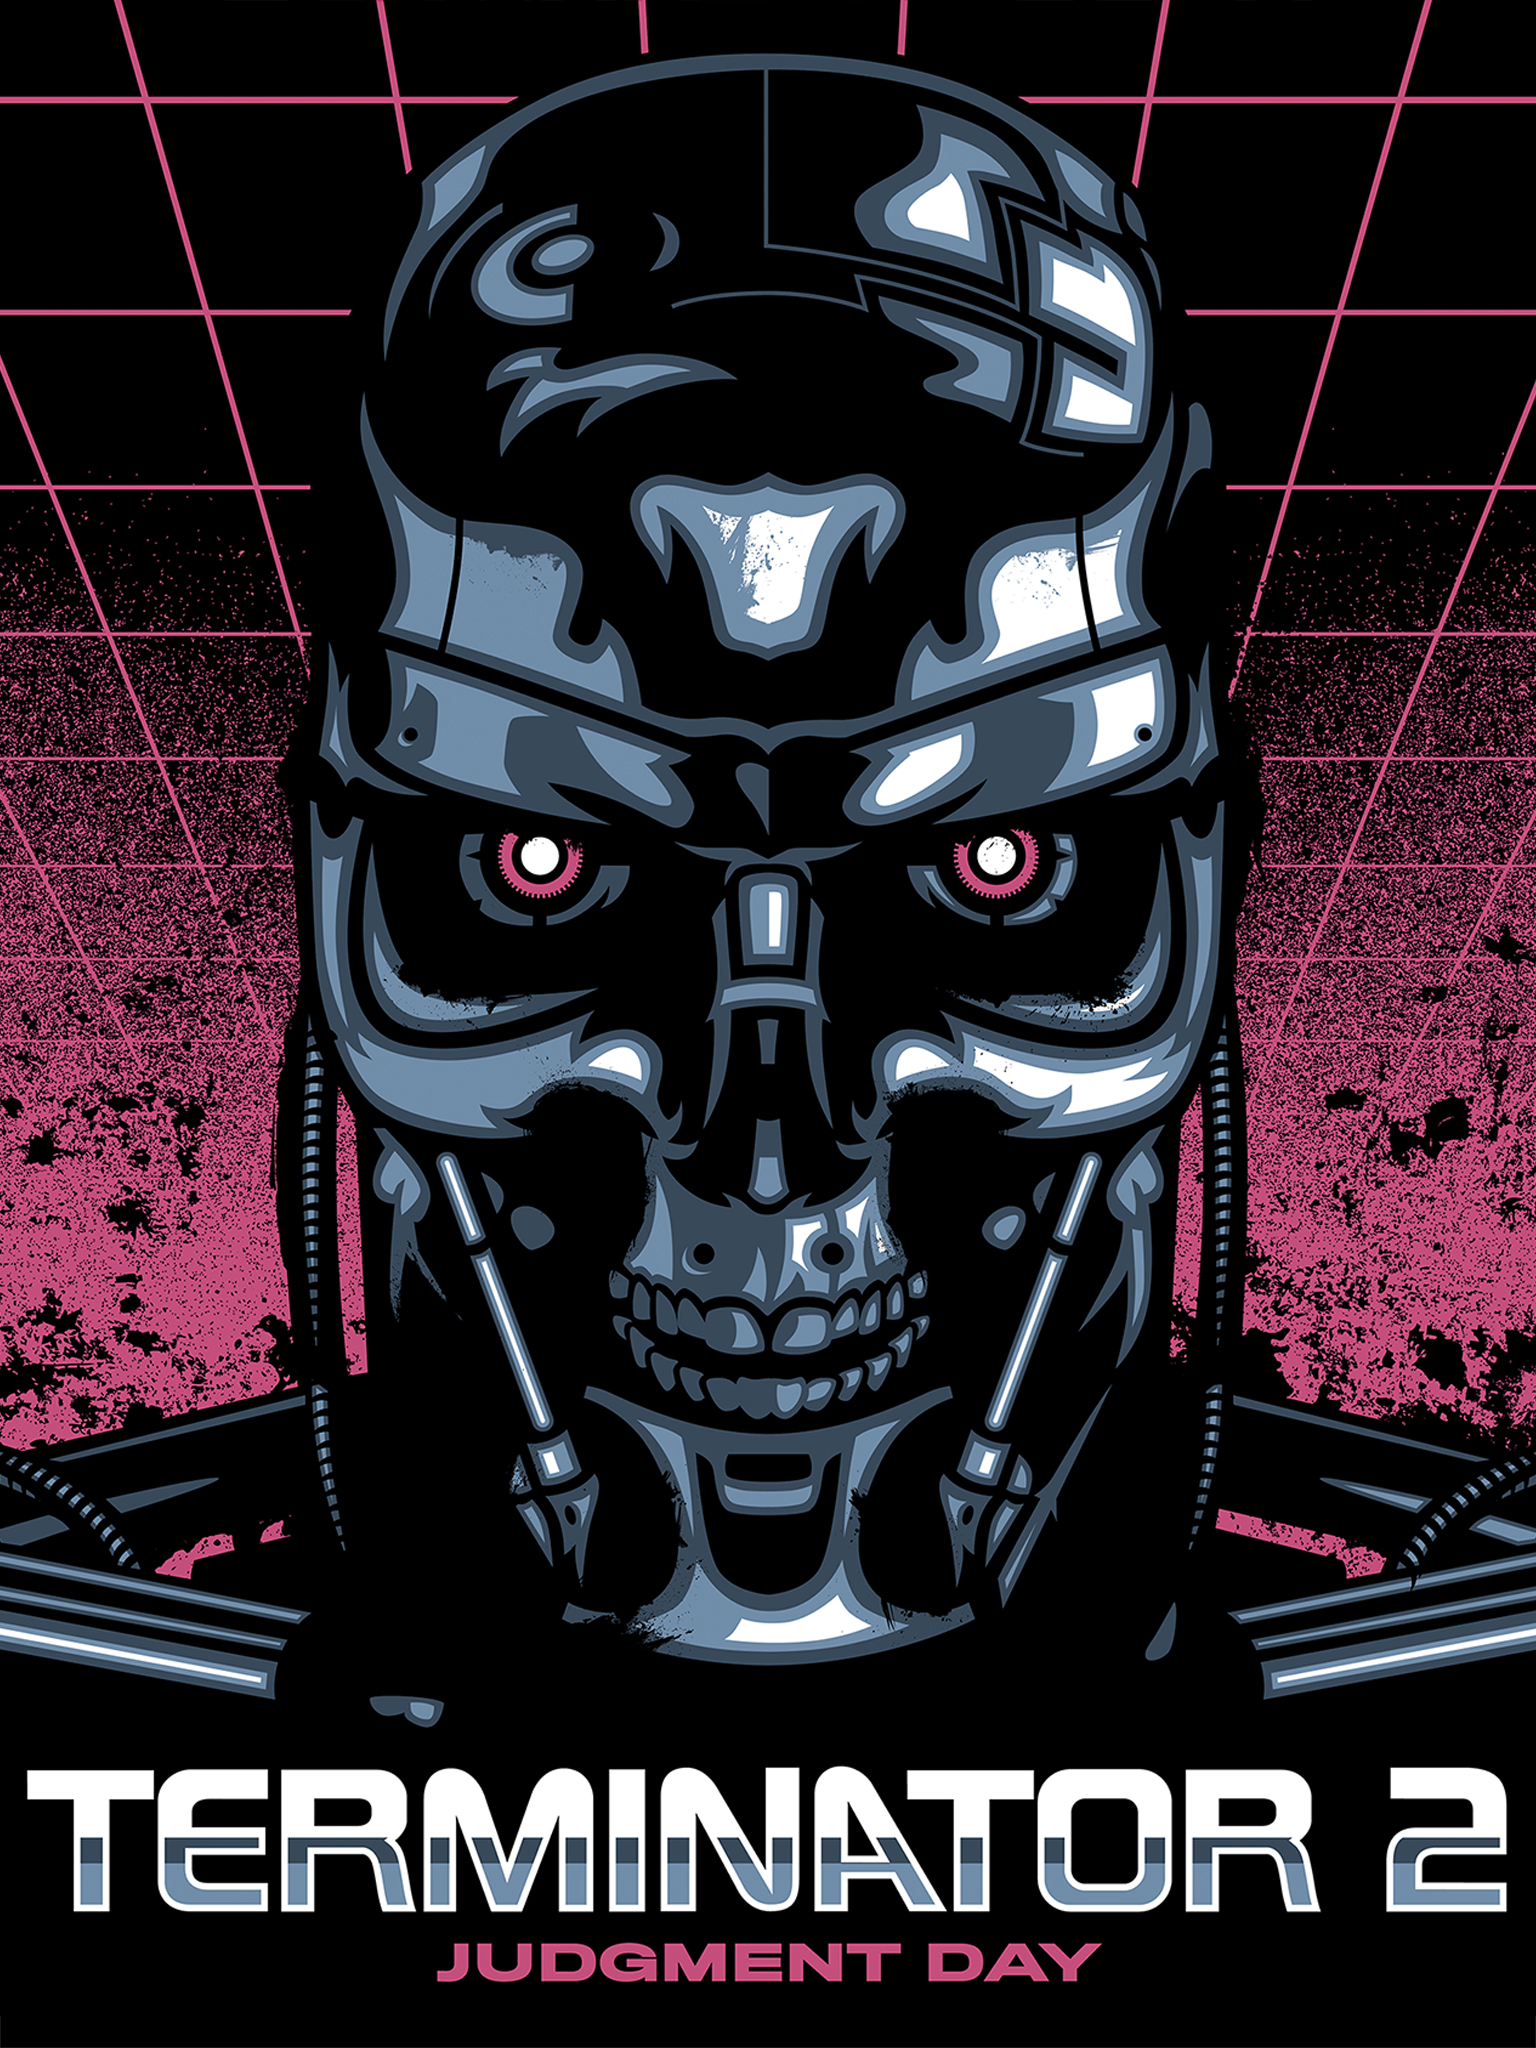 Wallpaper Of The Week Terminator 2 By James White